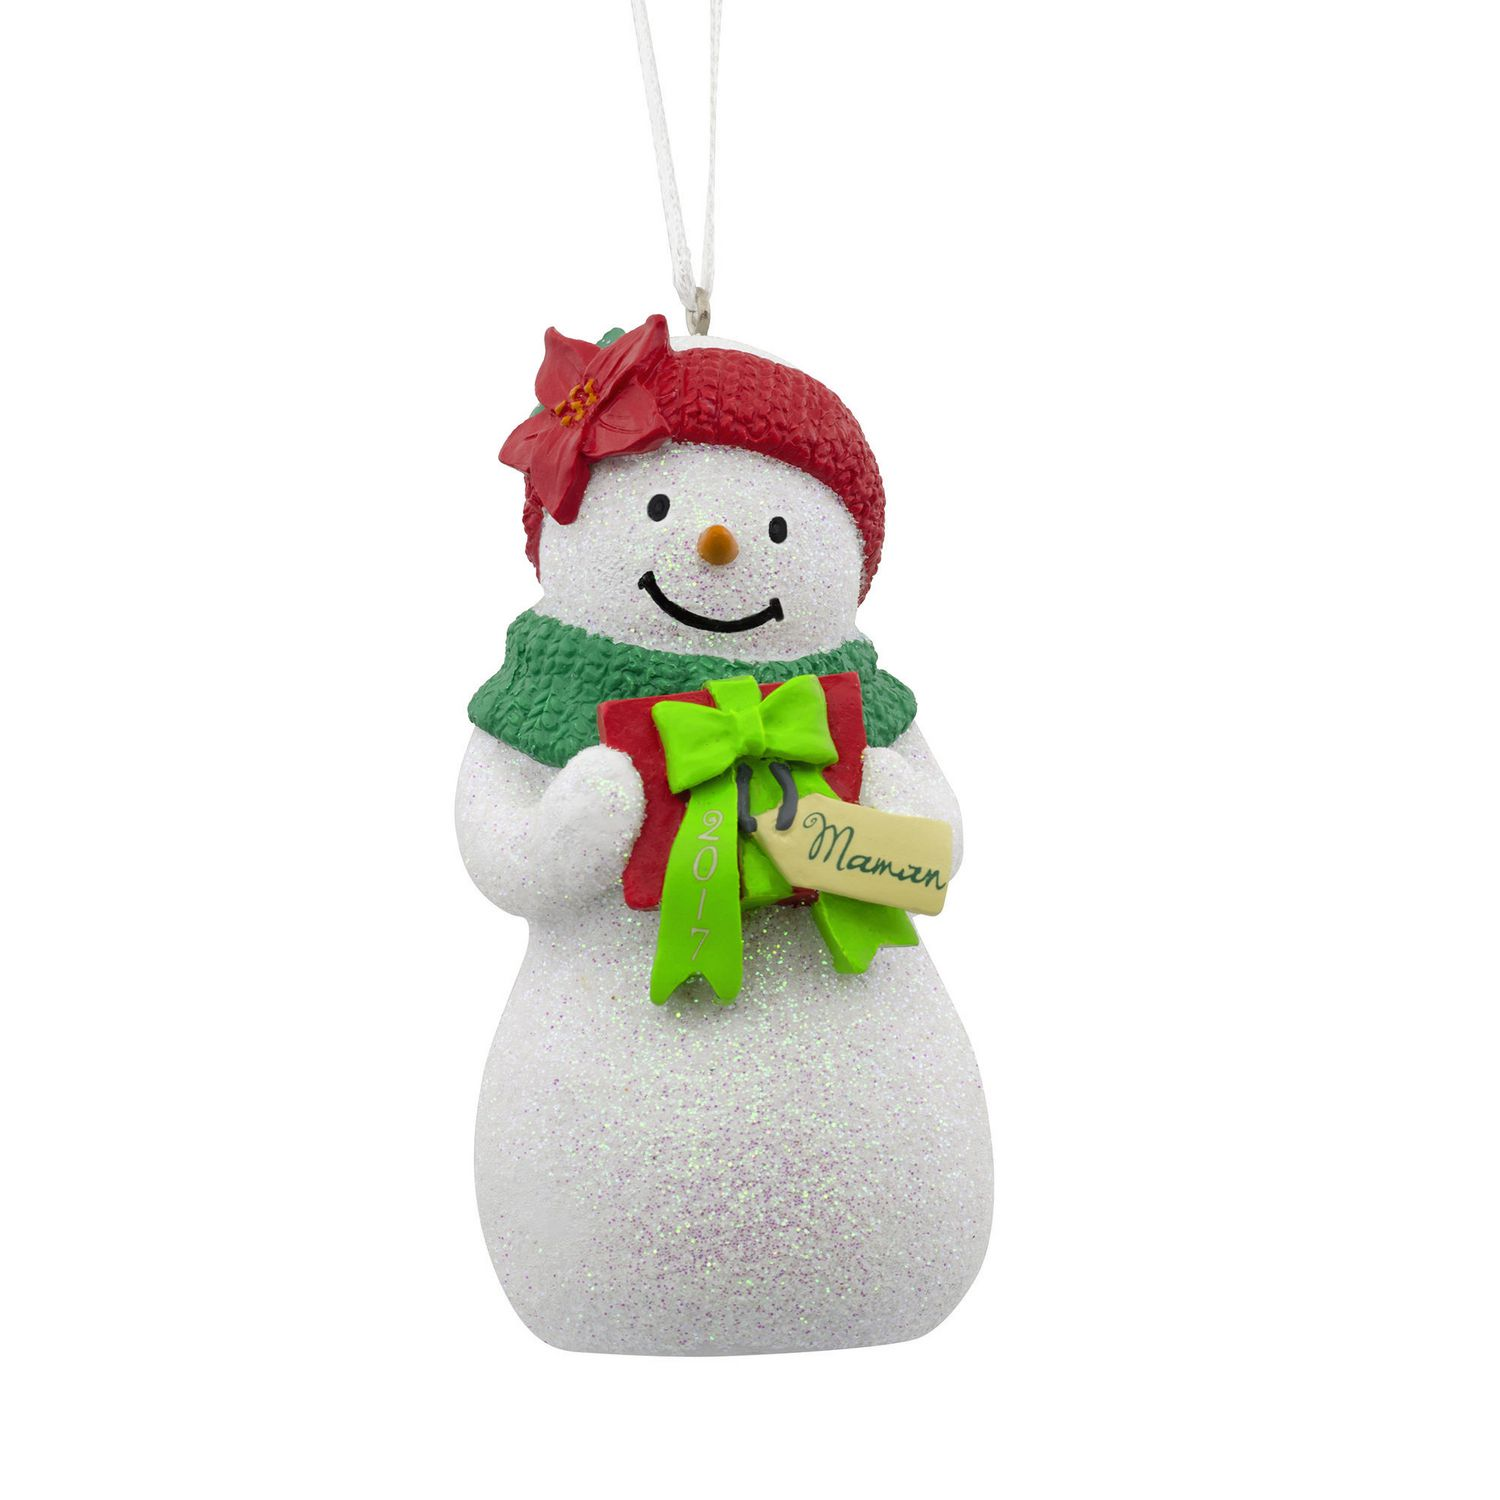 decorations of decor card christmas fltr on meaning snowman ornaments the